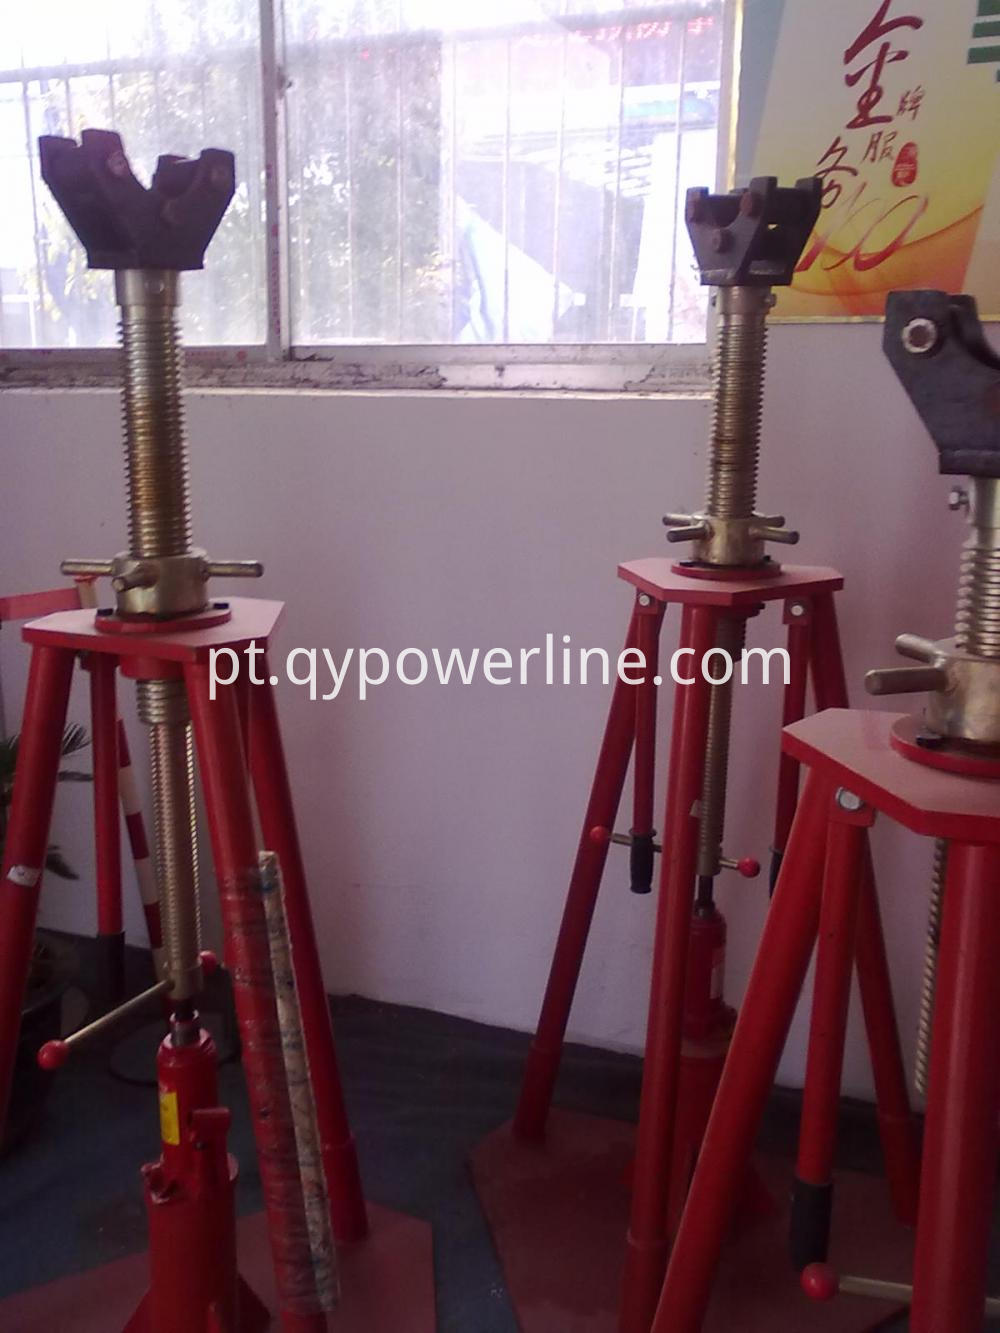 Hydraulic Lifting Jack Stand